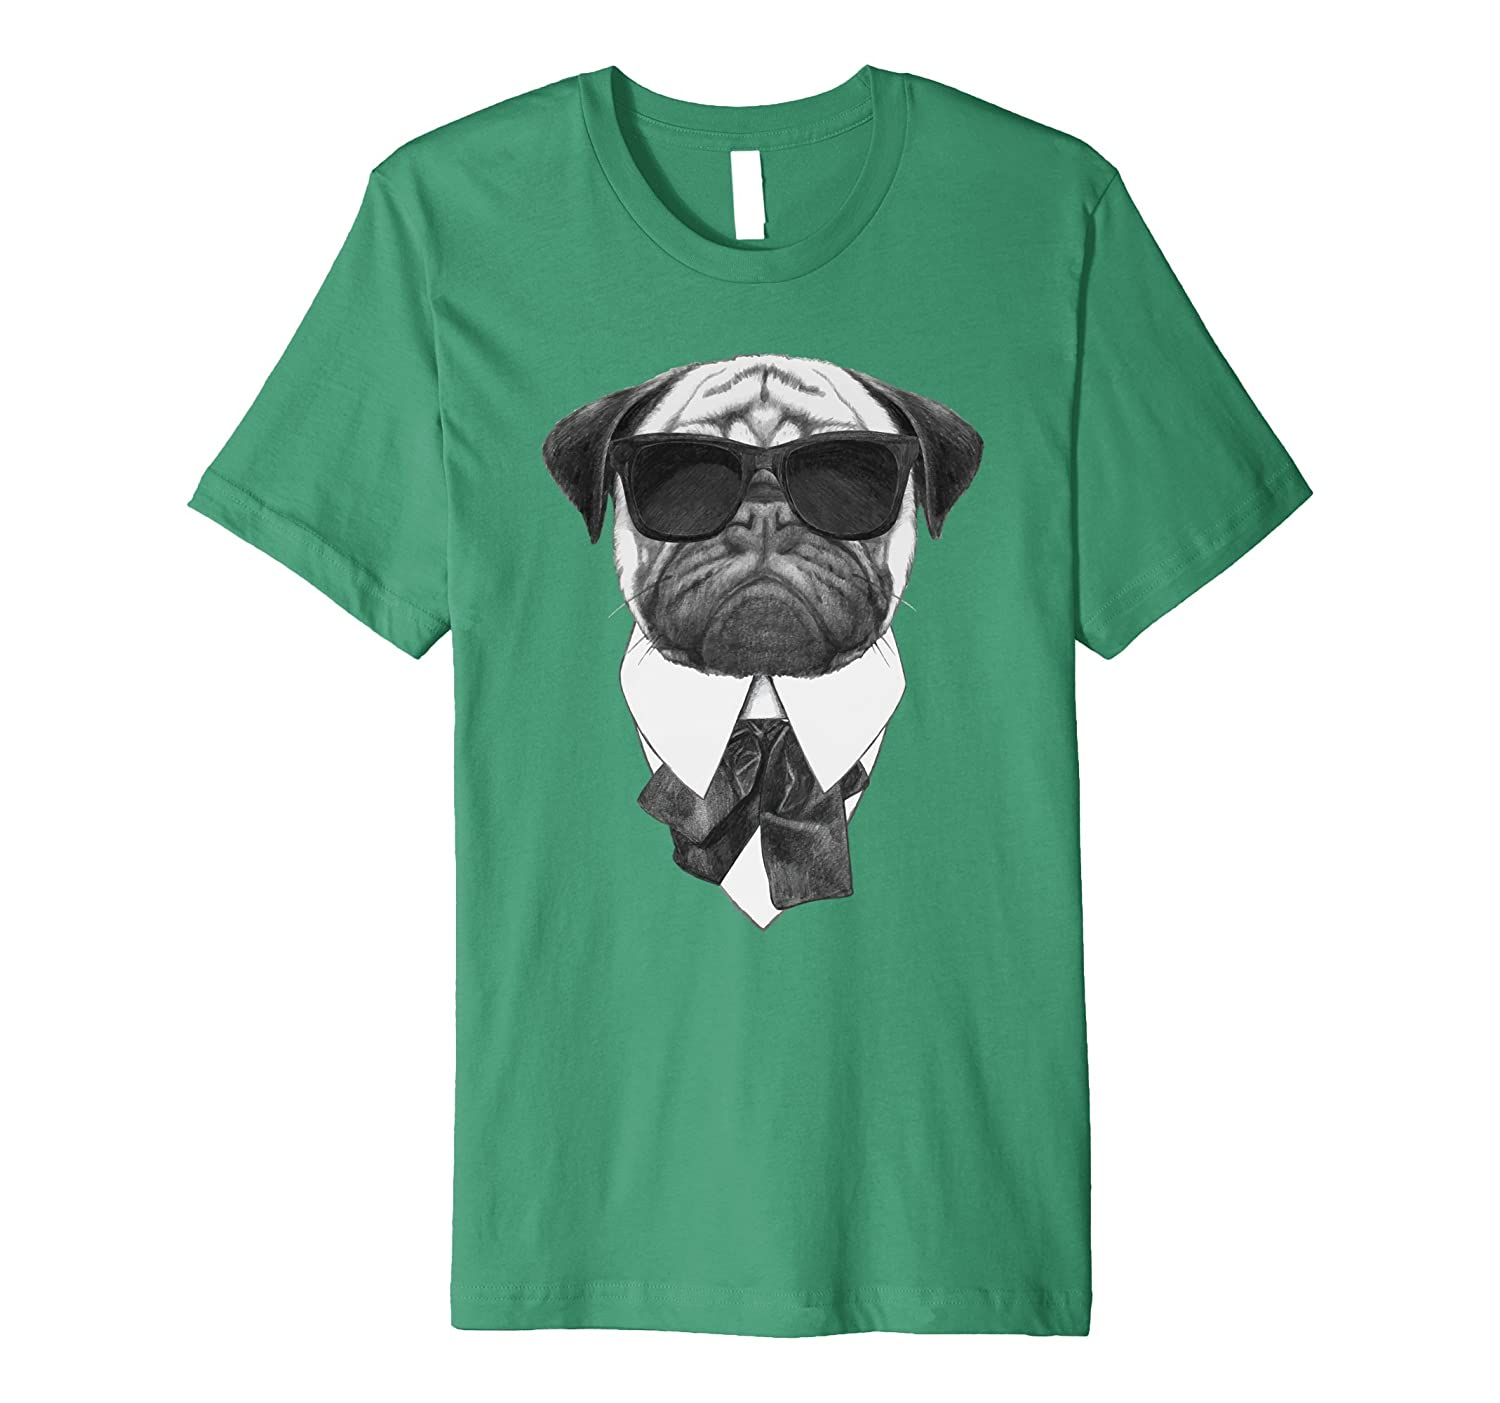 Pugs Dog Brother Youth Boy Girl Lightweight Pullover Sweatshirt Funny Shirt